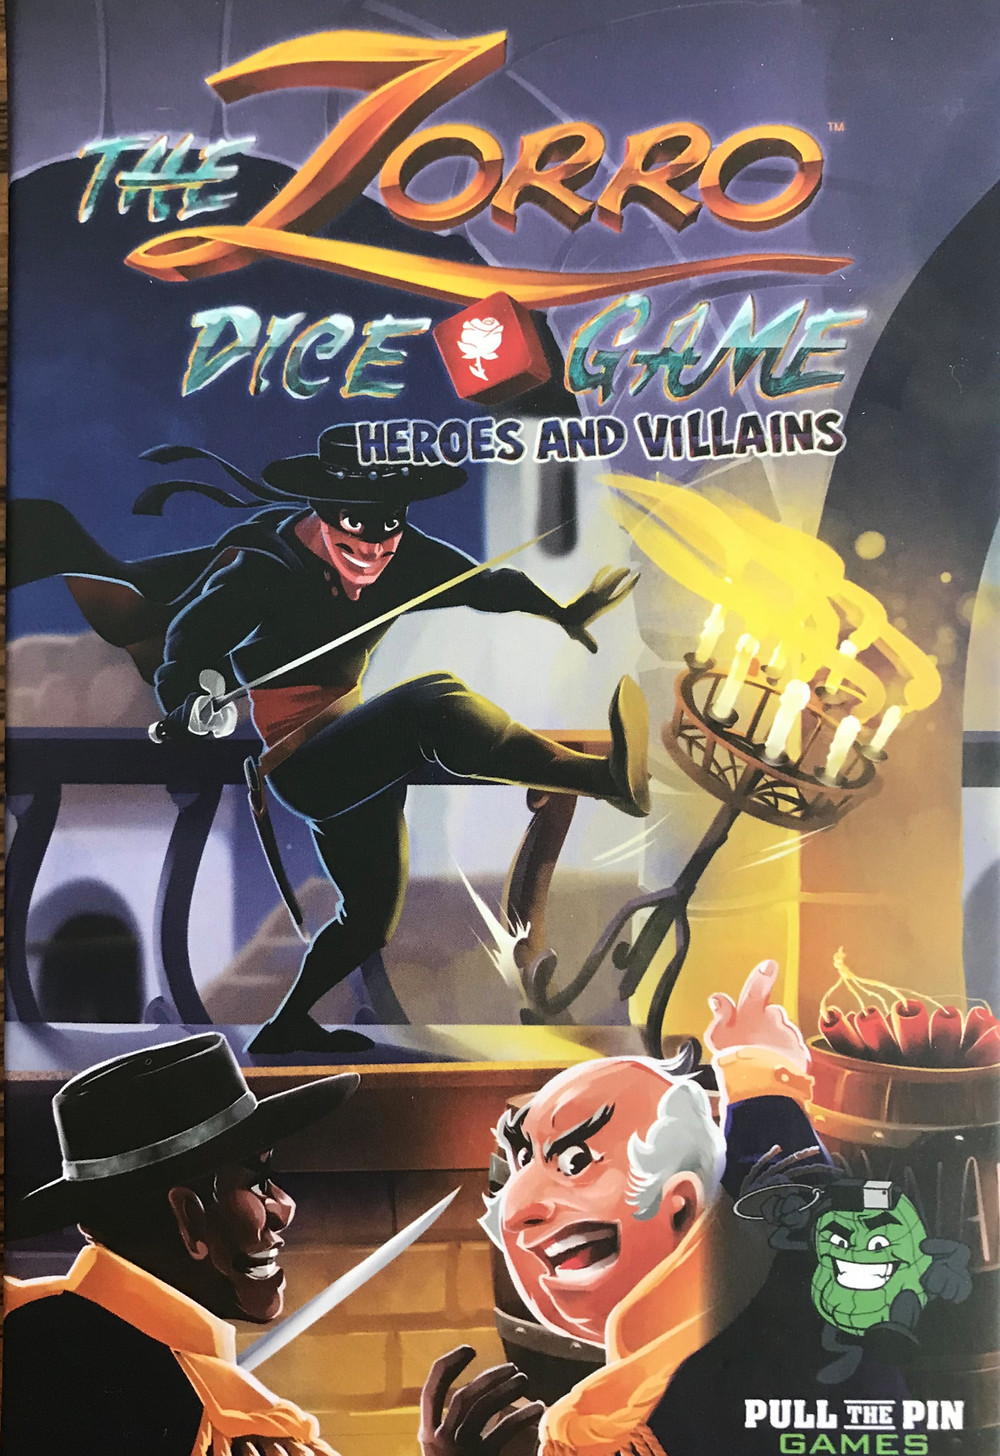 The Zorro Dice Game Heroes and Villains expansion box